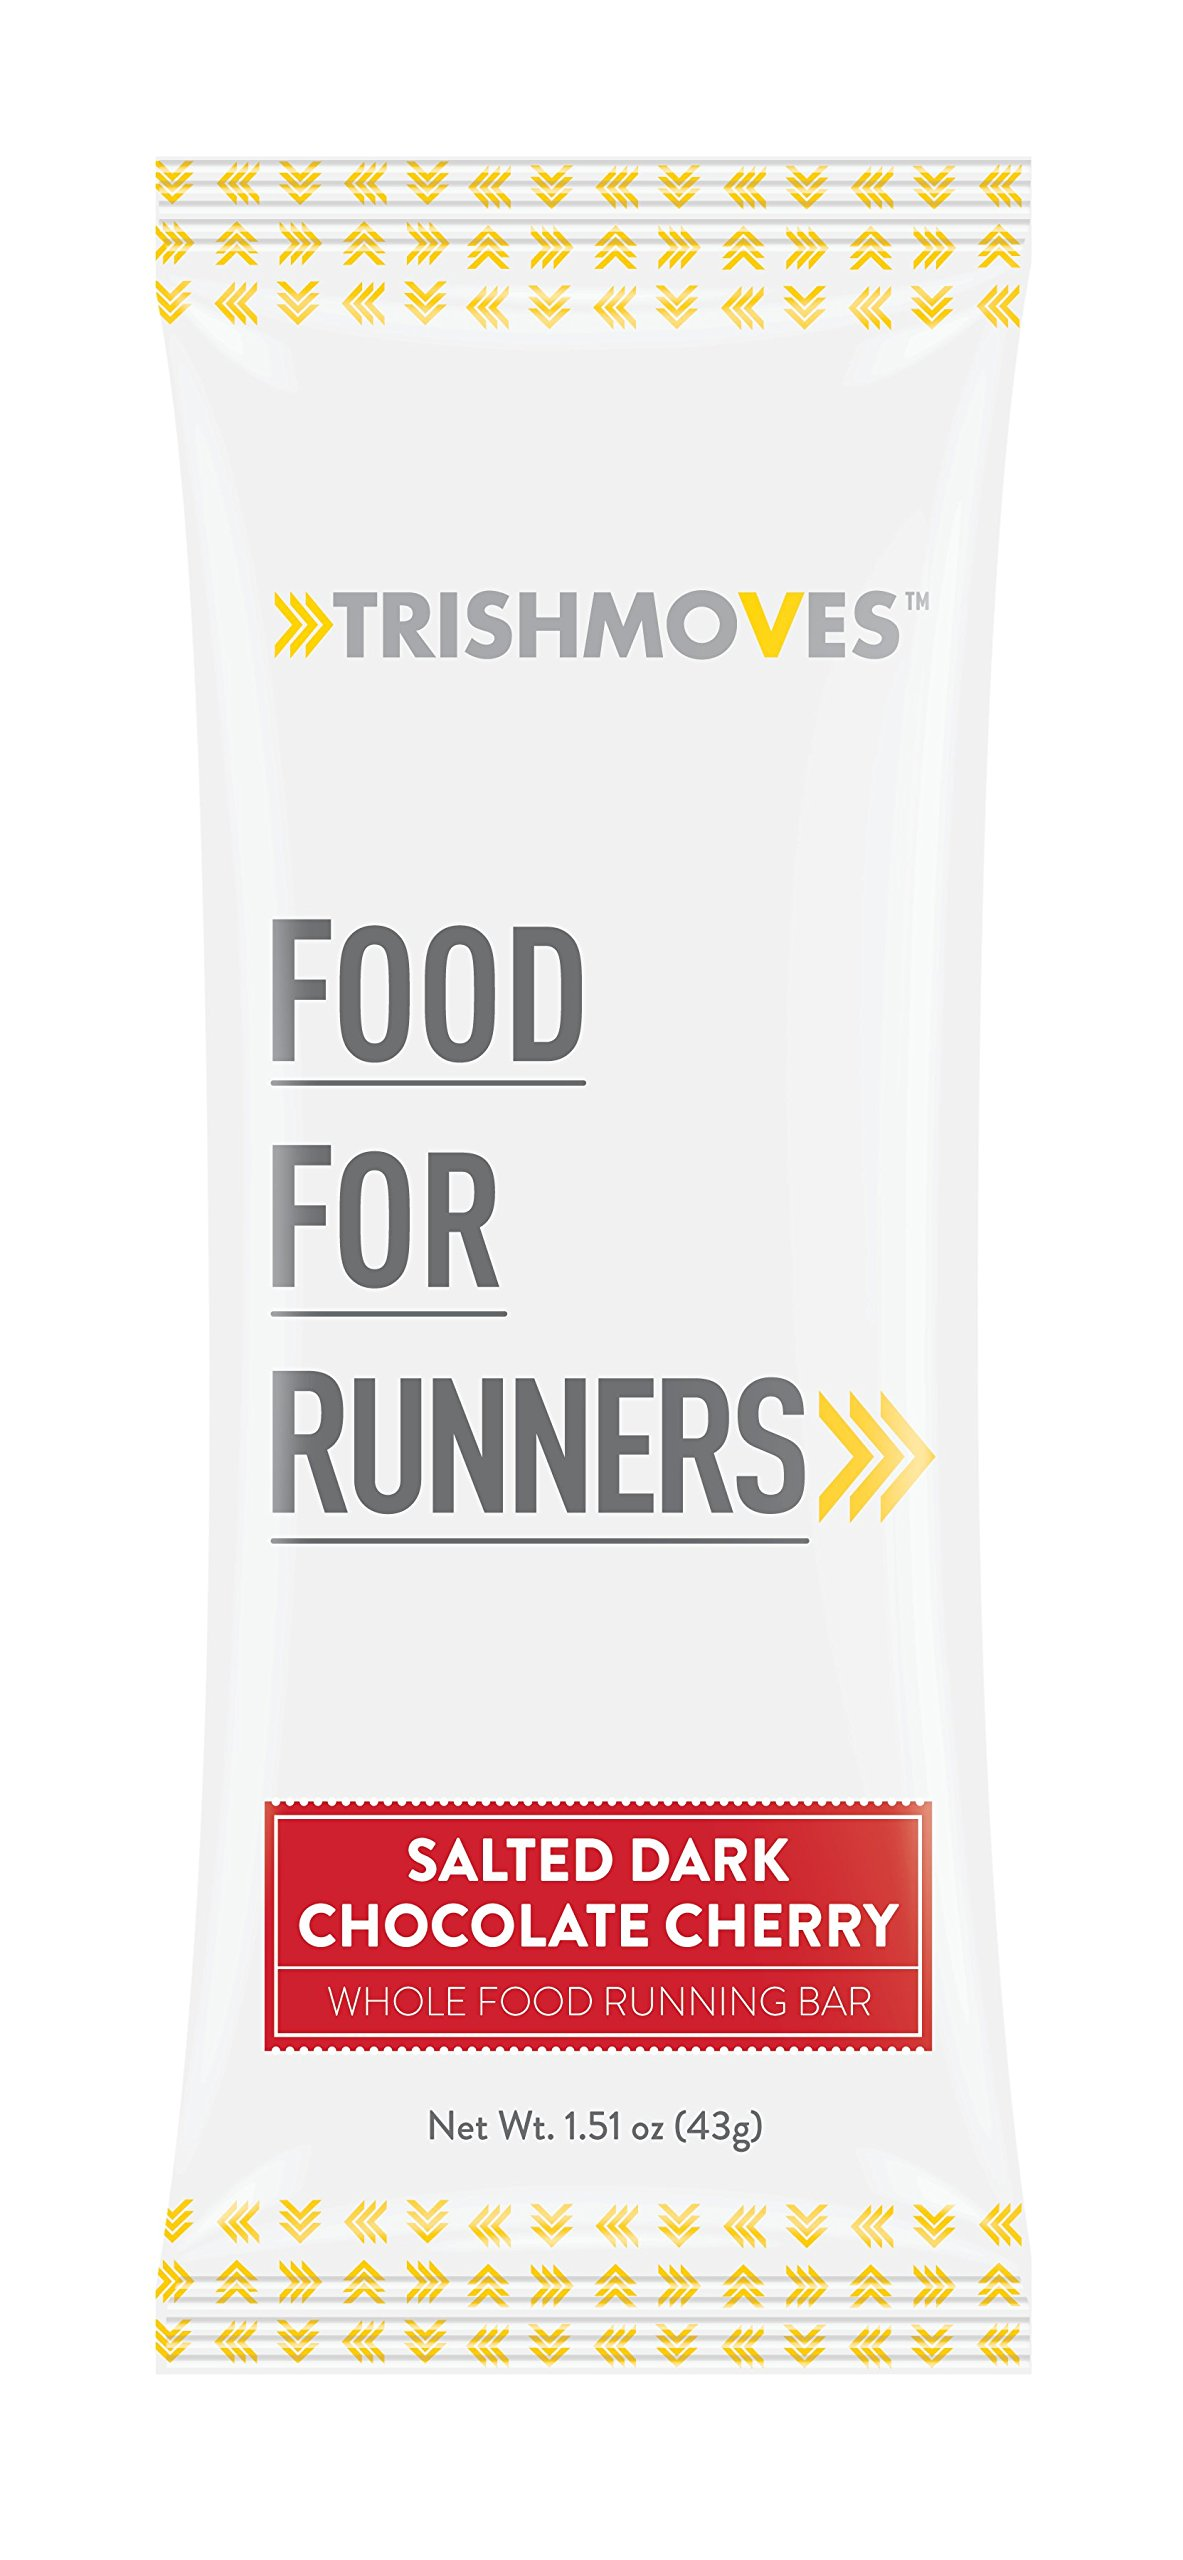 Trishmoves Salted Dark Chocolate Cherry Running Bar - 12 Pack